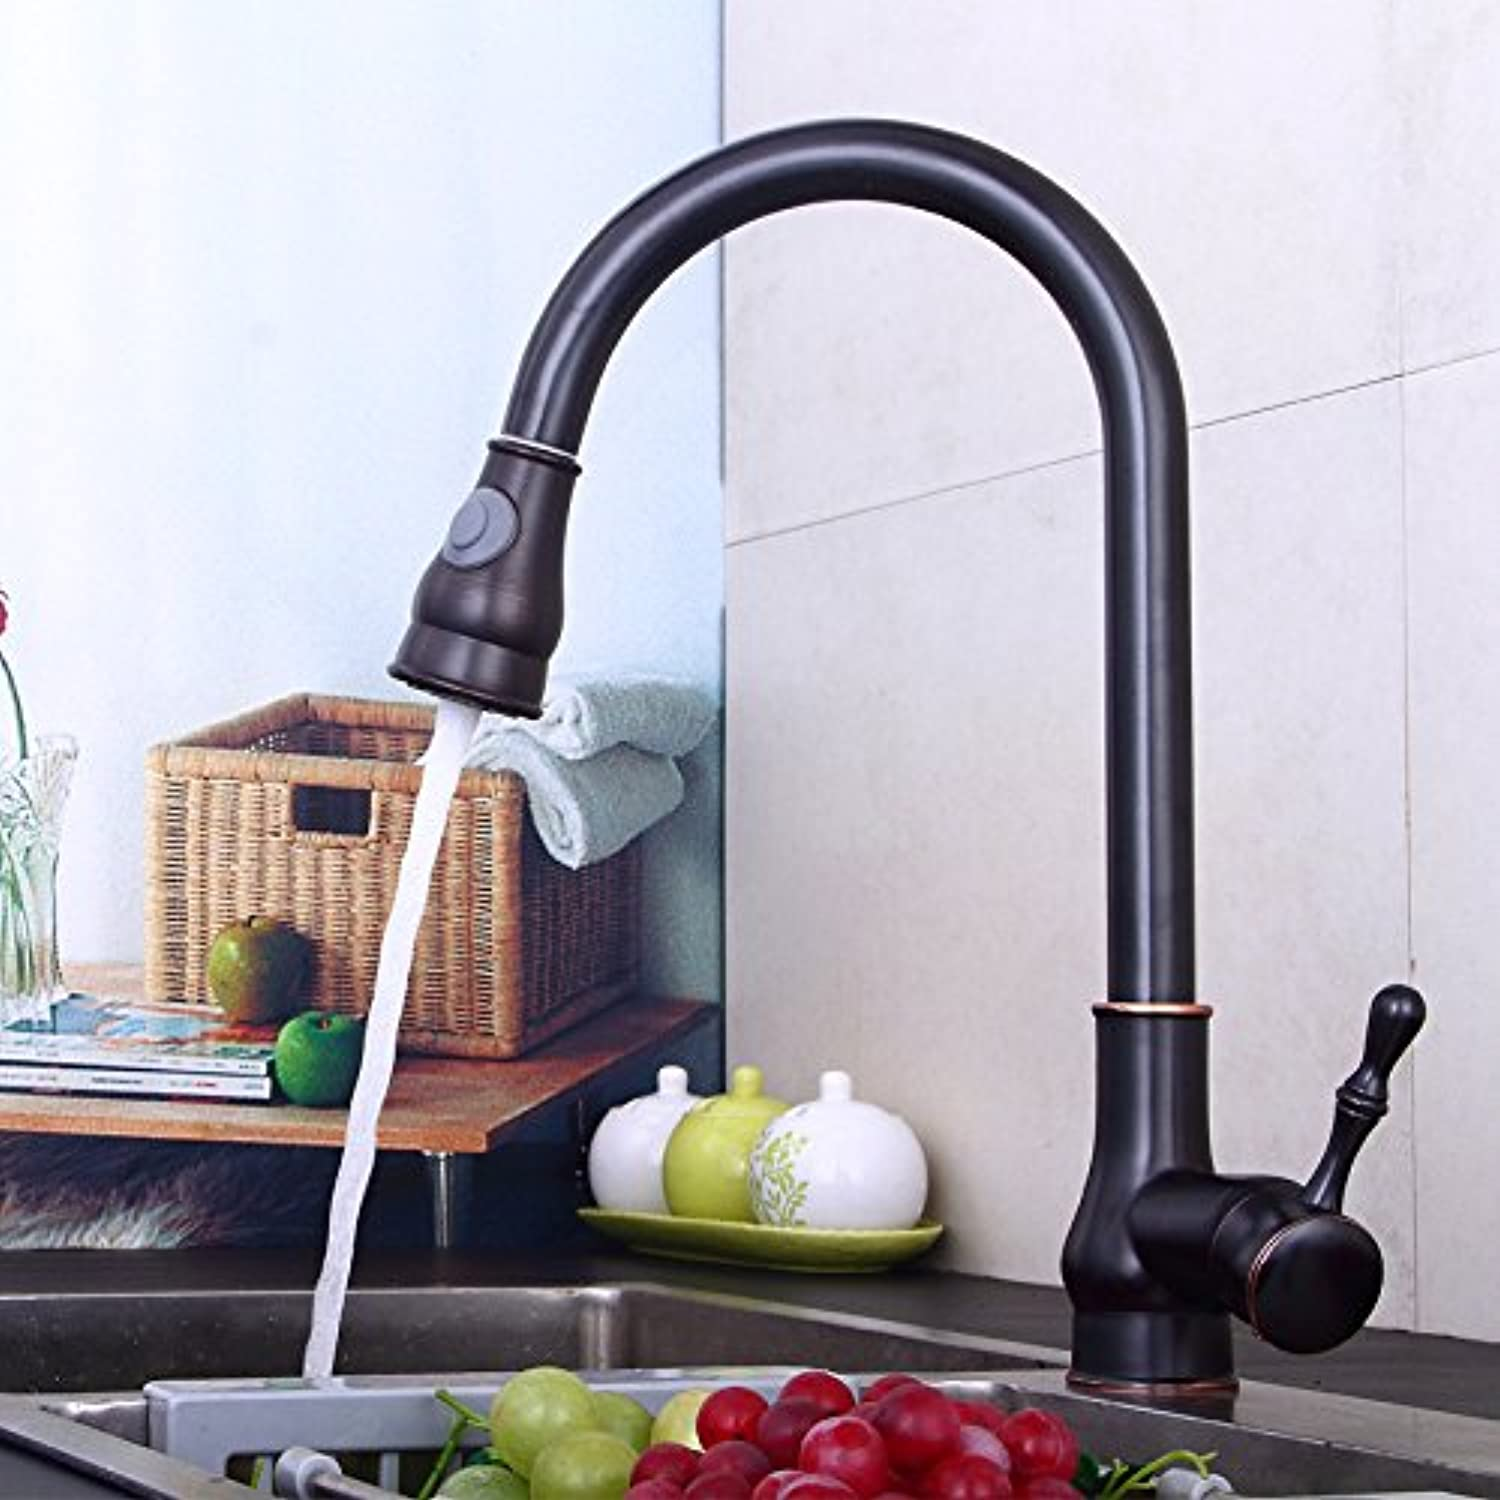 redOOY Taps Kitchen Multi-Function Black Copper Pull Faucet Kitchen Sink Water Dragon